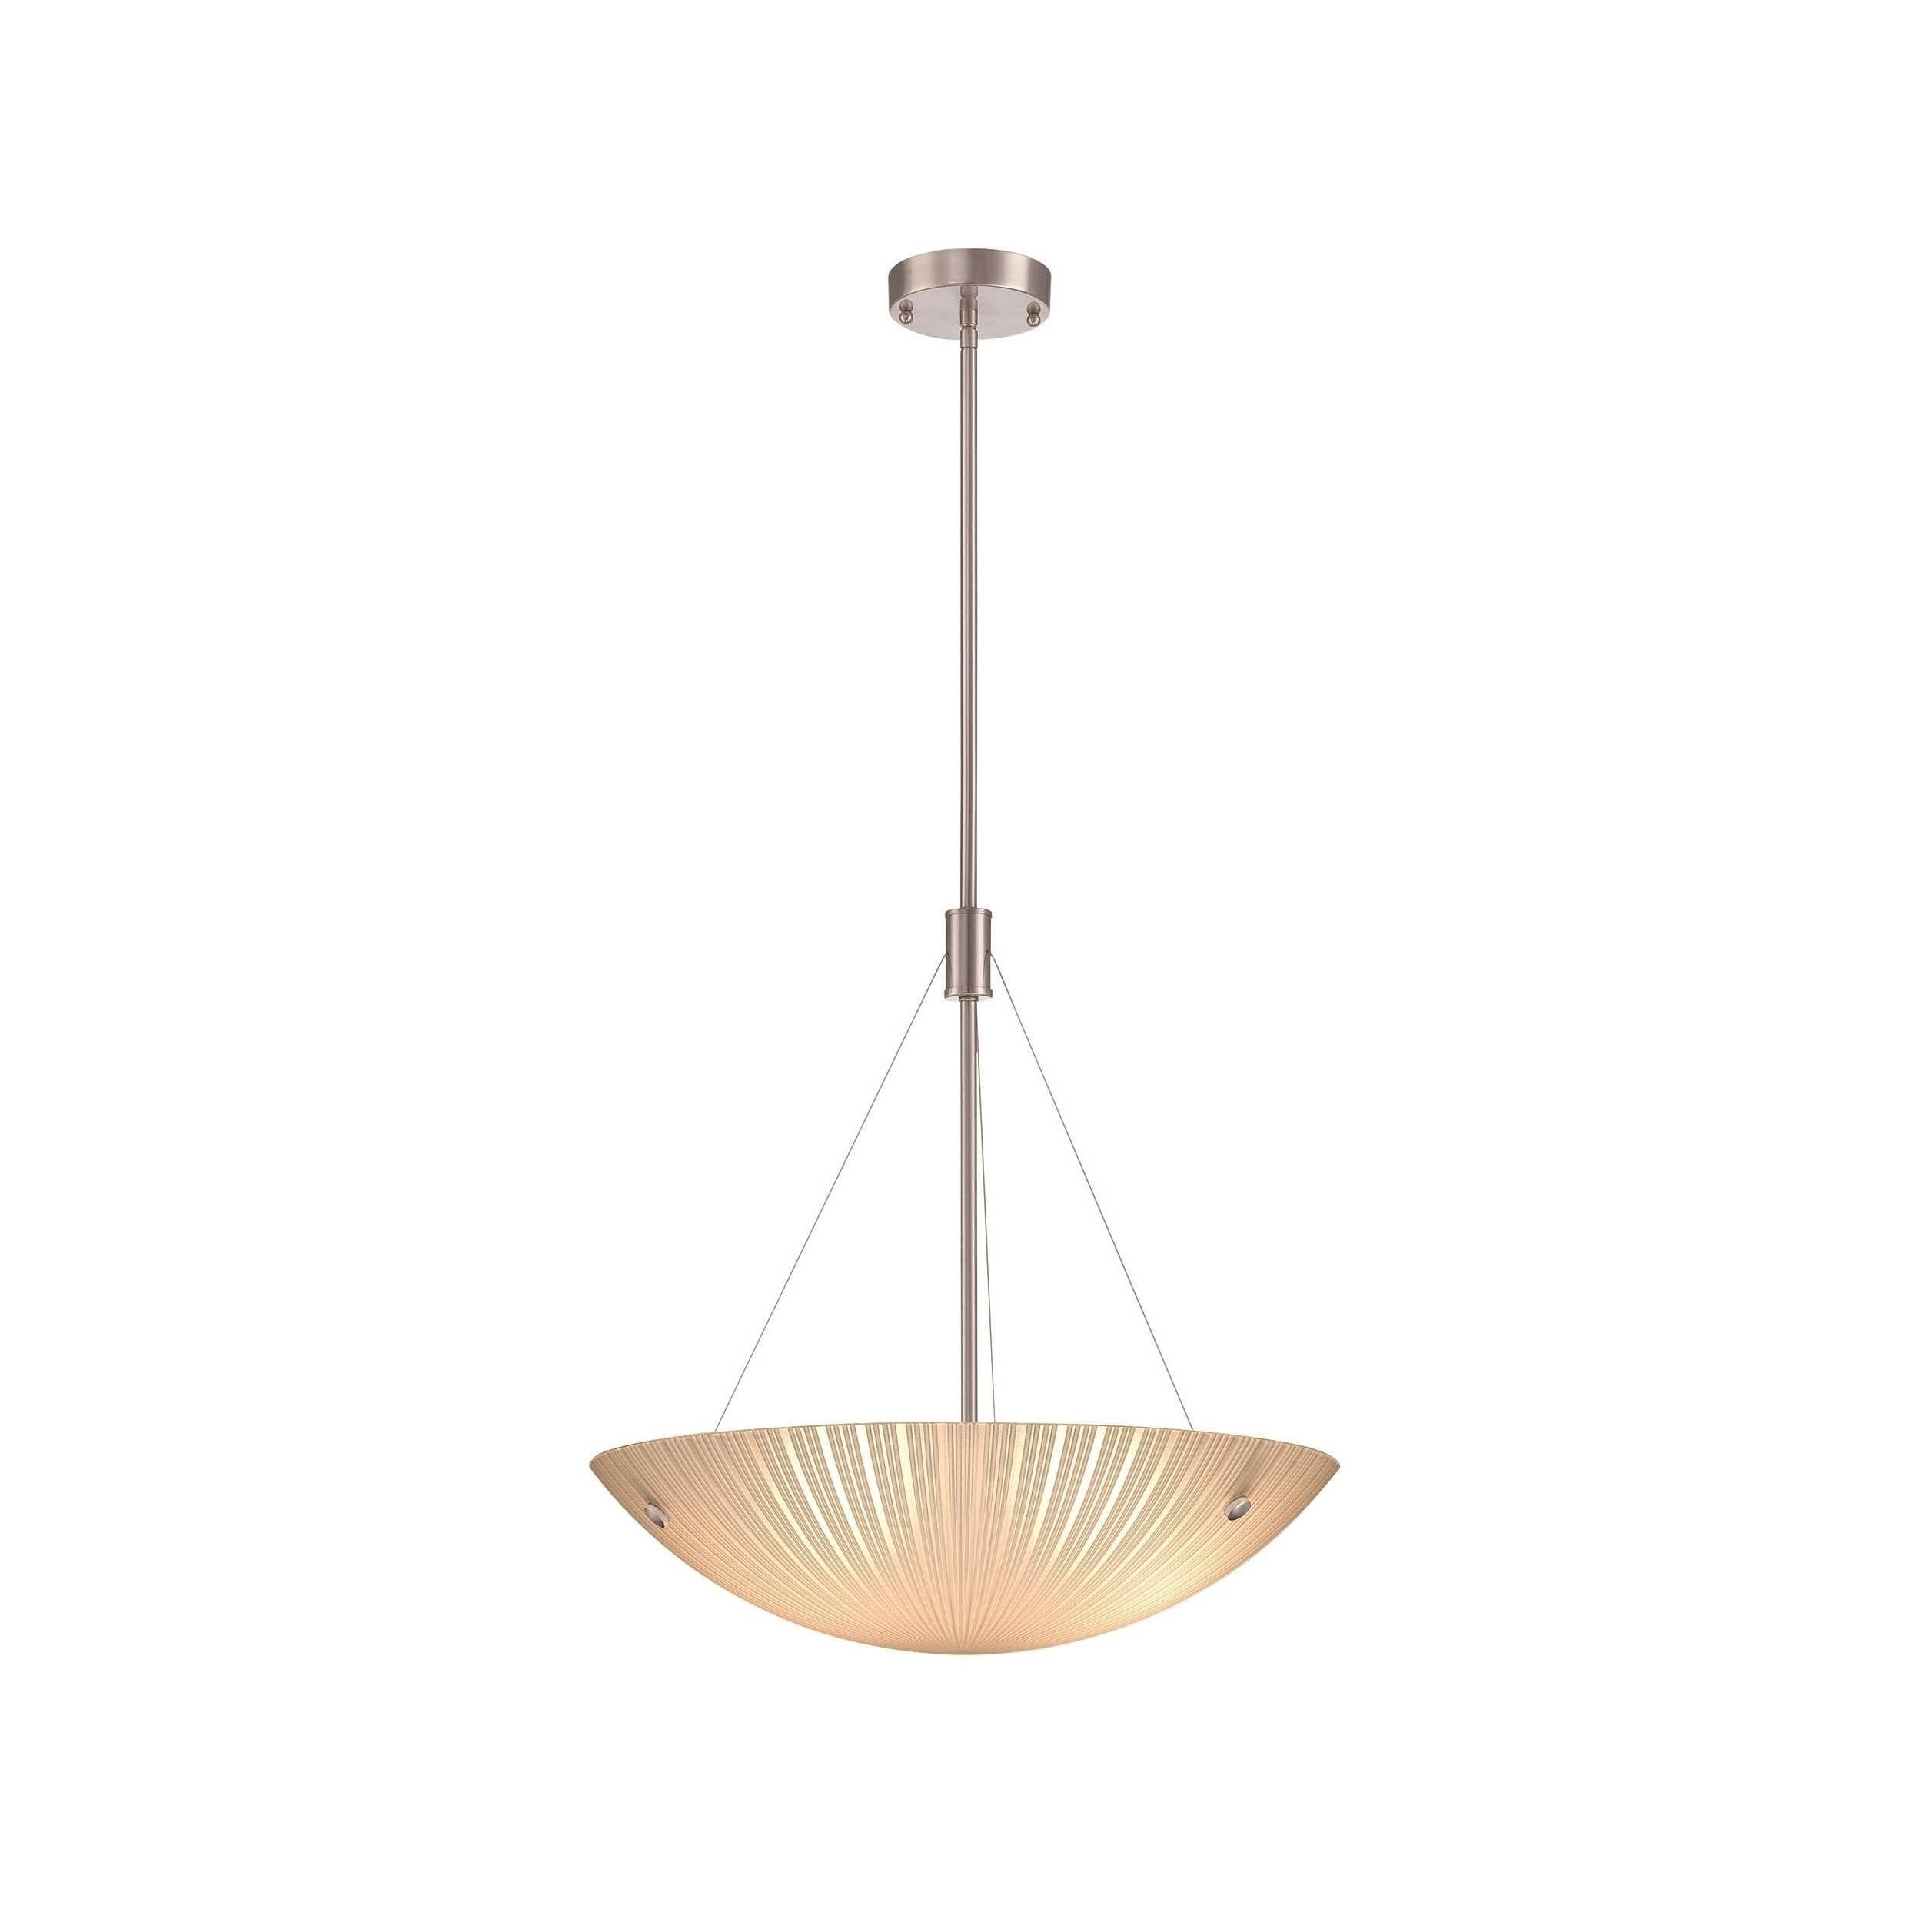 Lite Source LS-18461 Rocco 3-Light Pendant with Frost Glass Shade, Polished Steel Finish